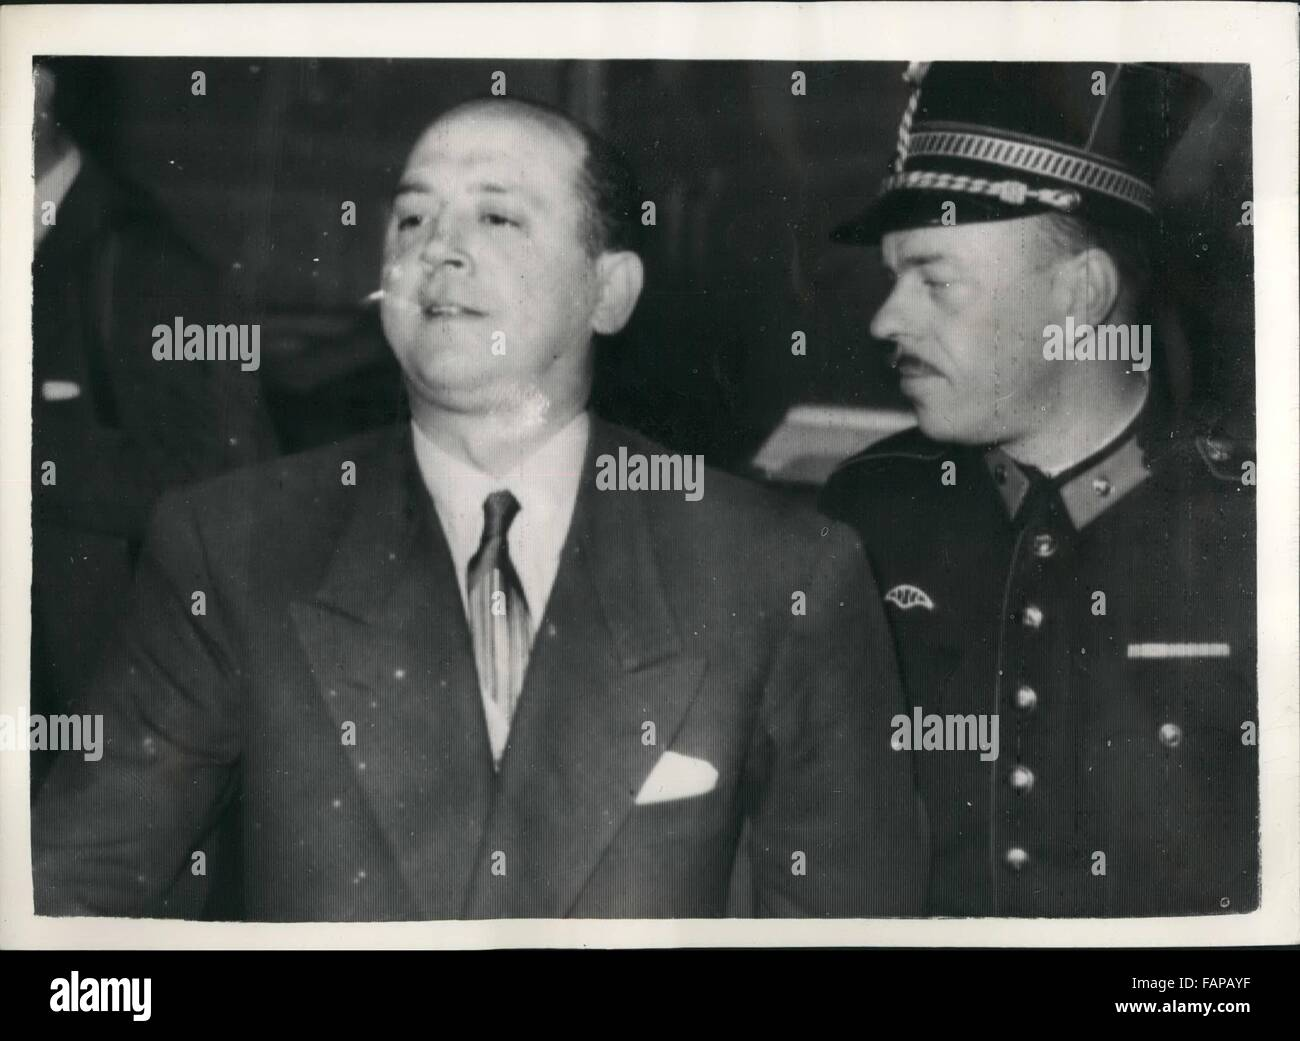 1962 - Messina Brothers on Trial in Belgium. ''Engaged in White Slavery'' - say Police: The trial opened at Tournai, Stock Photo